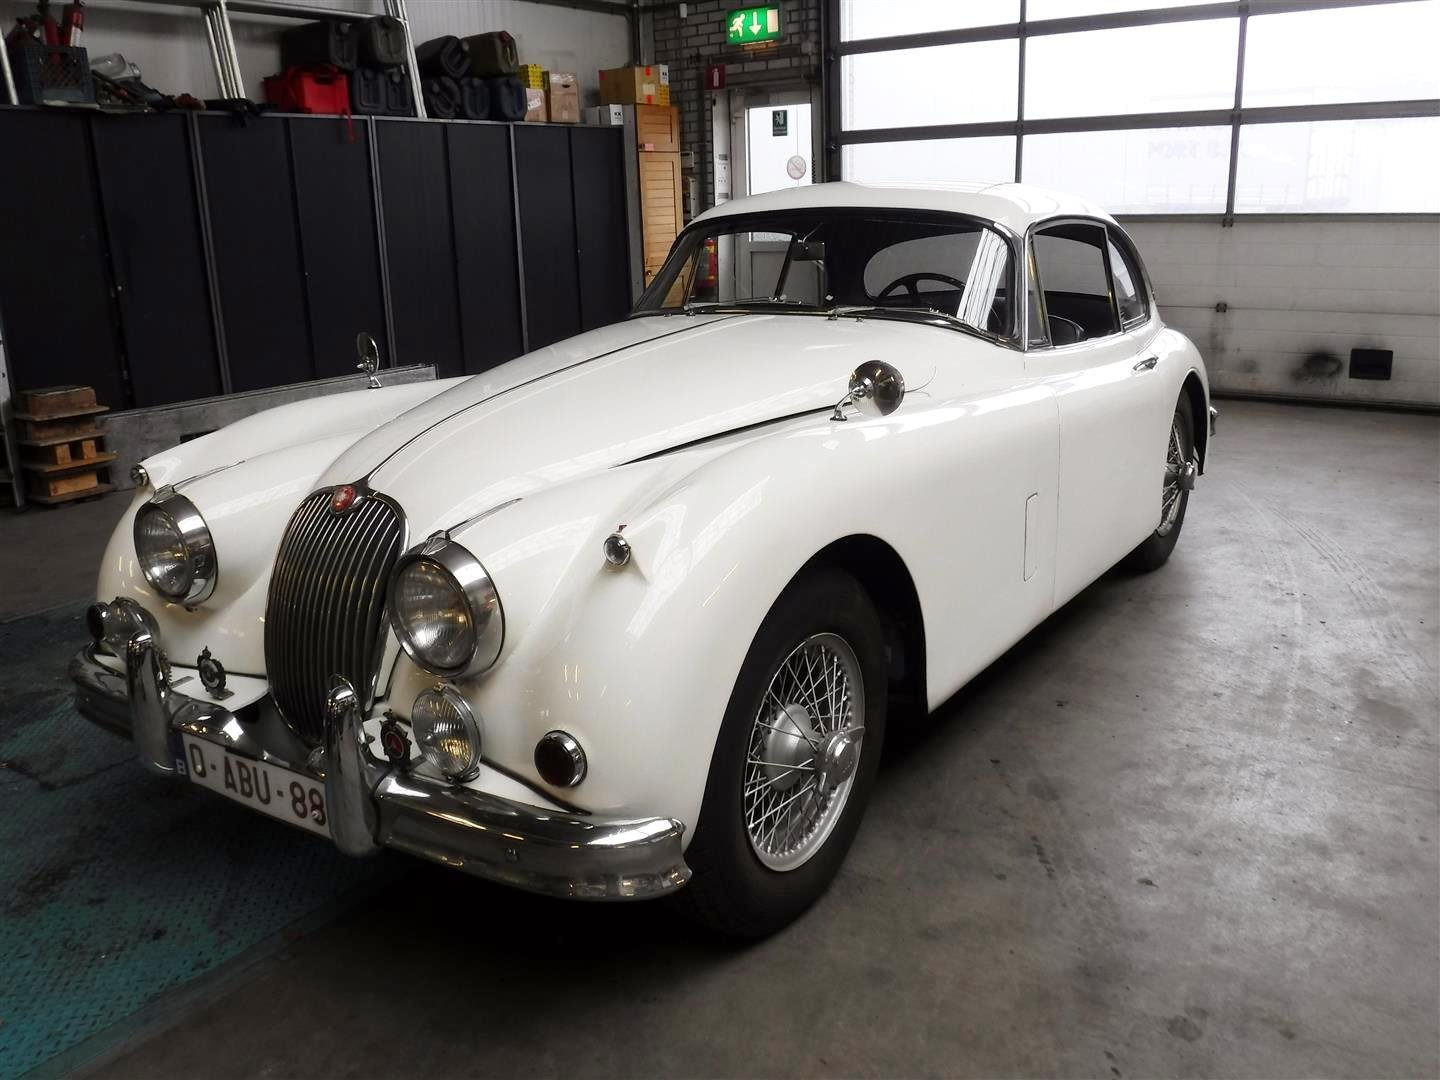 1958 Jaguar XK 150 coupe '58 For Sale (picture 1 of 6)